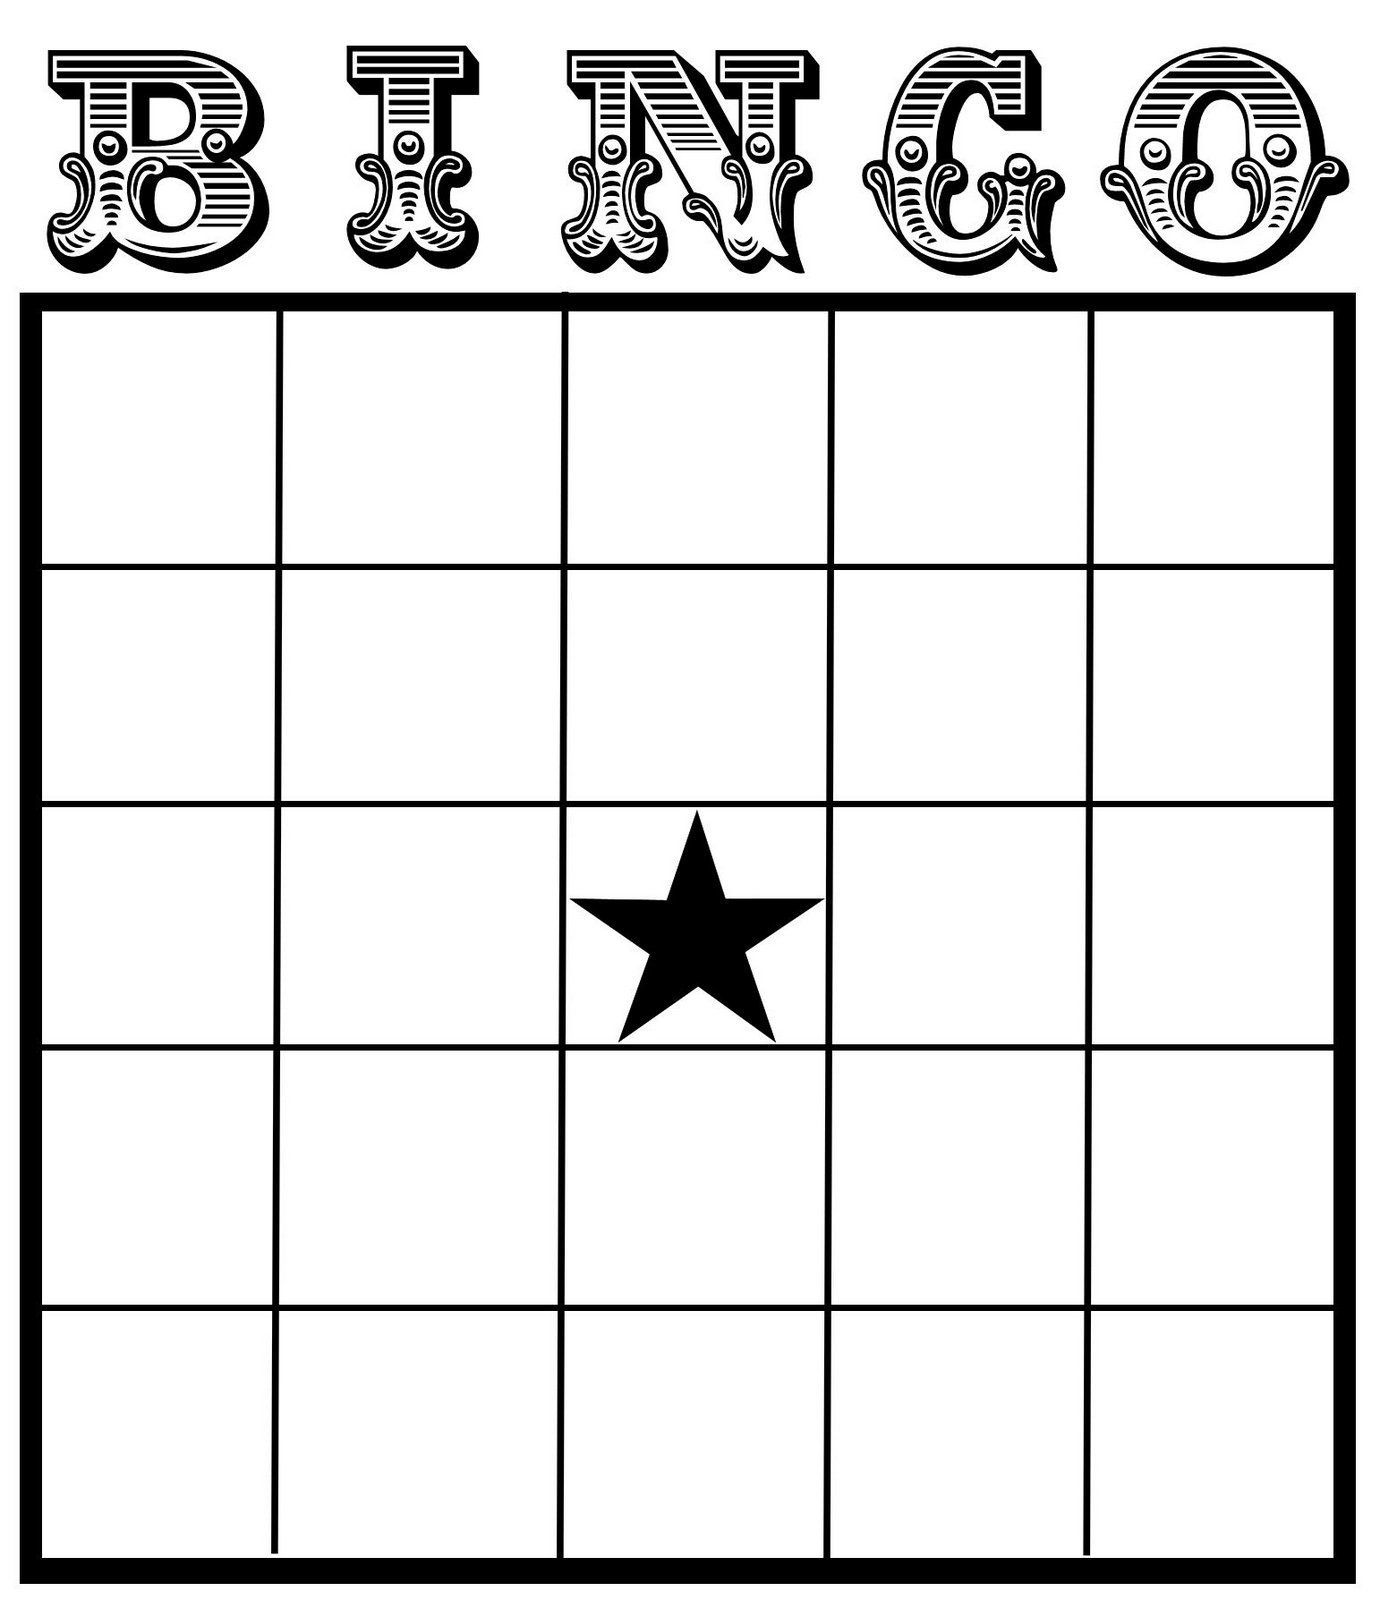 Christine Zani: Bingo Card Printables To Share | School Activities - Free Printable Bingo Cards For Teachers